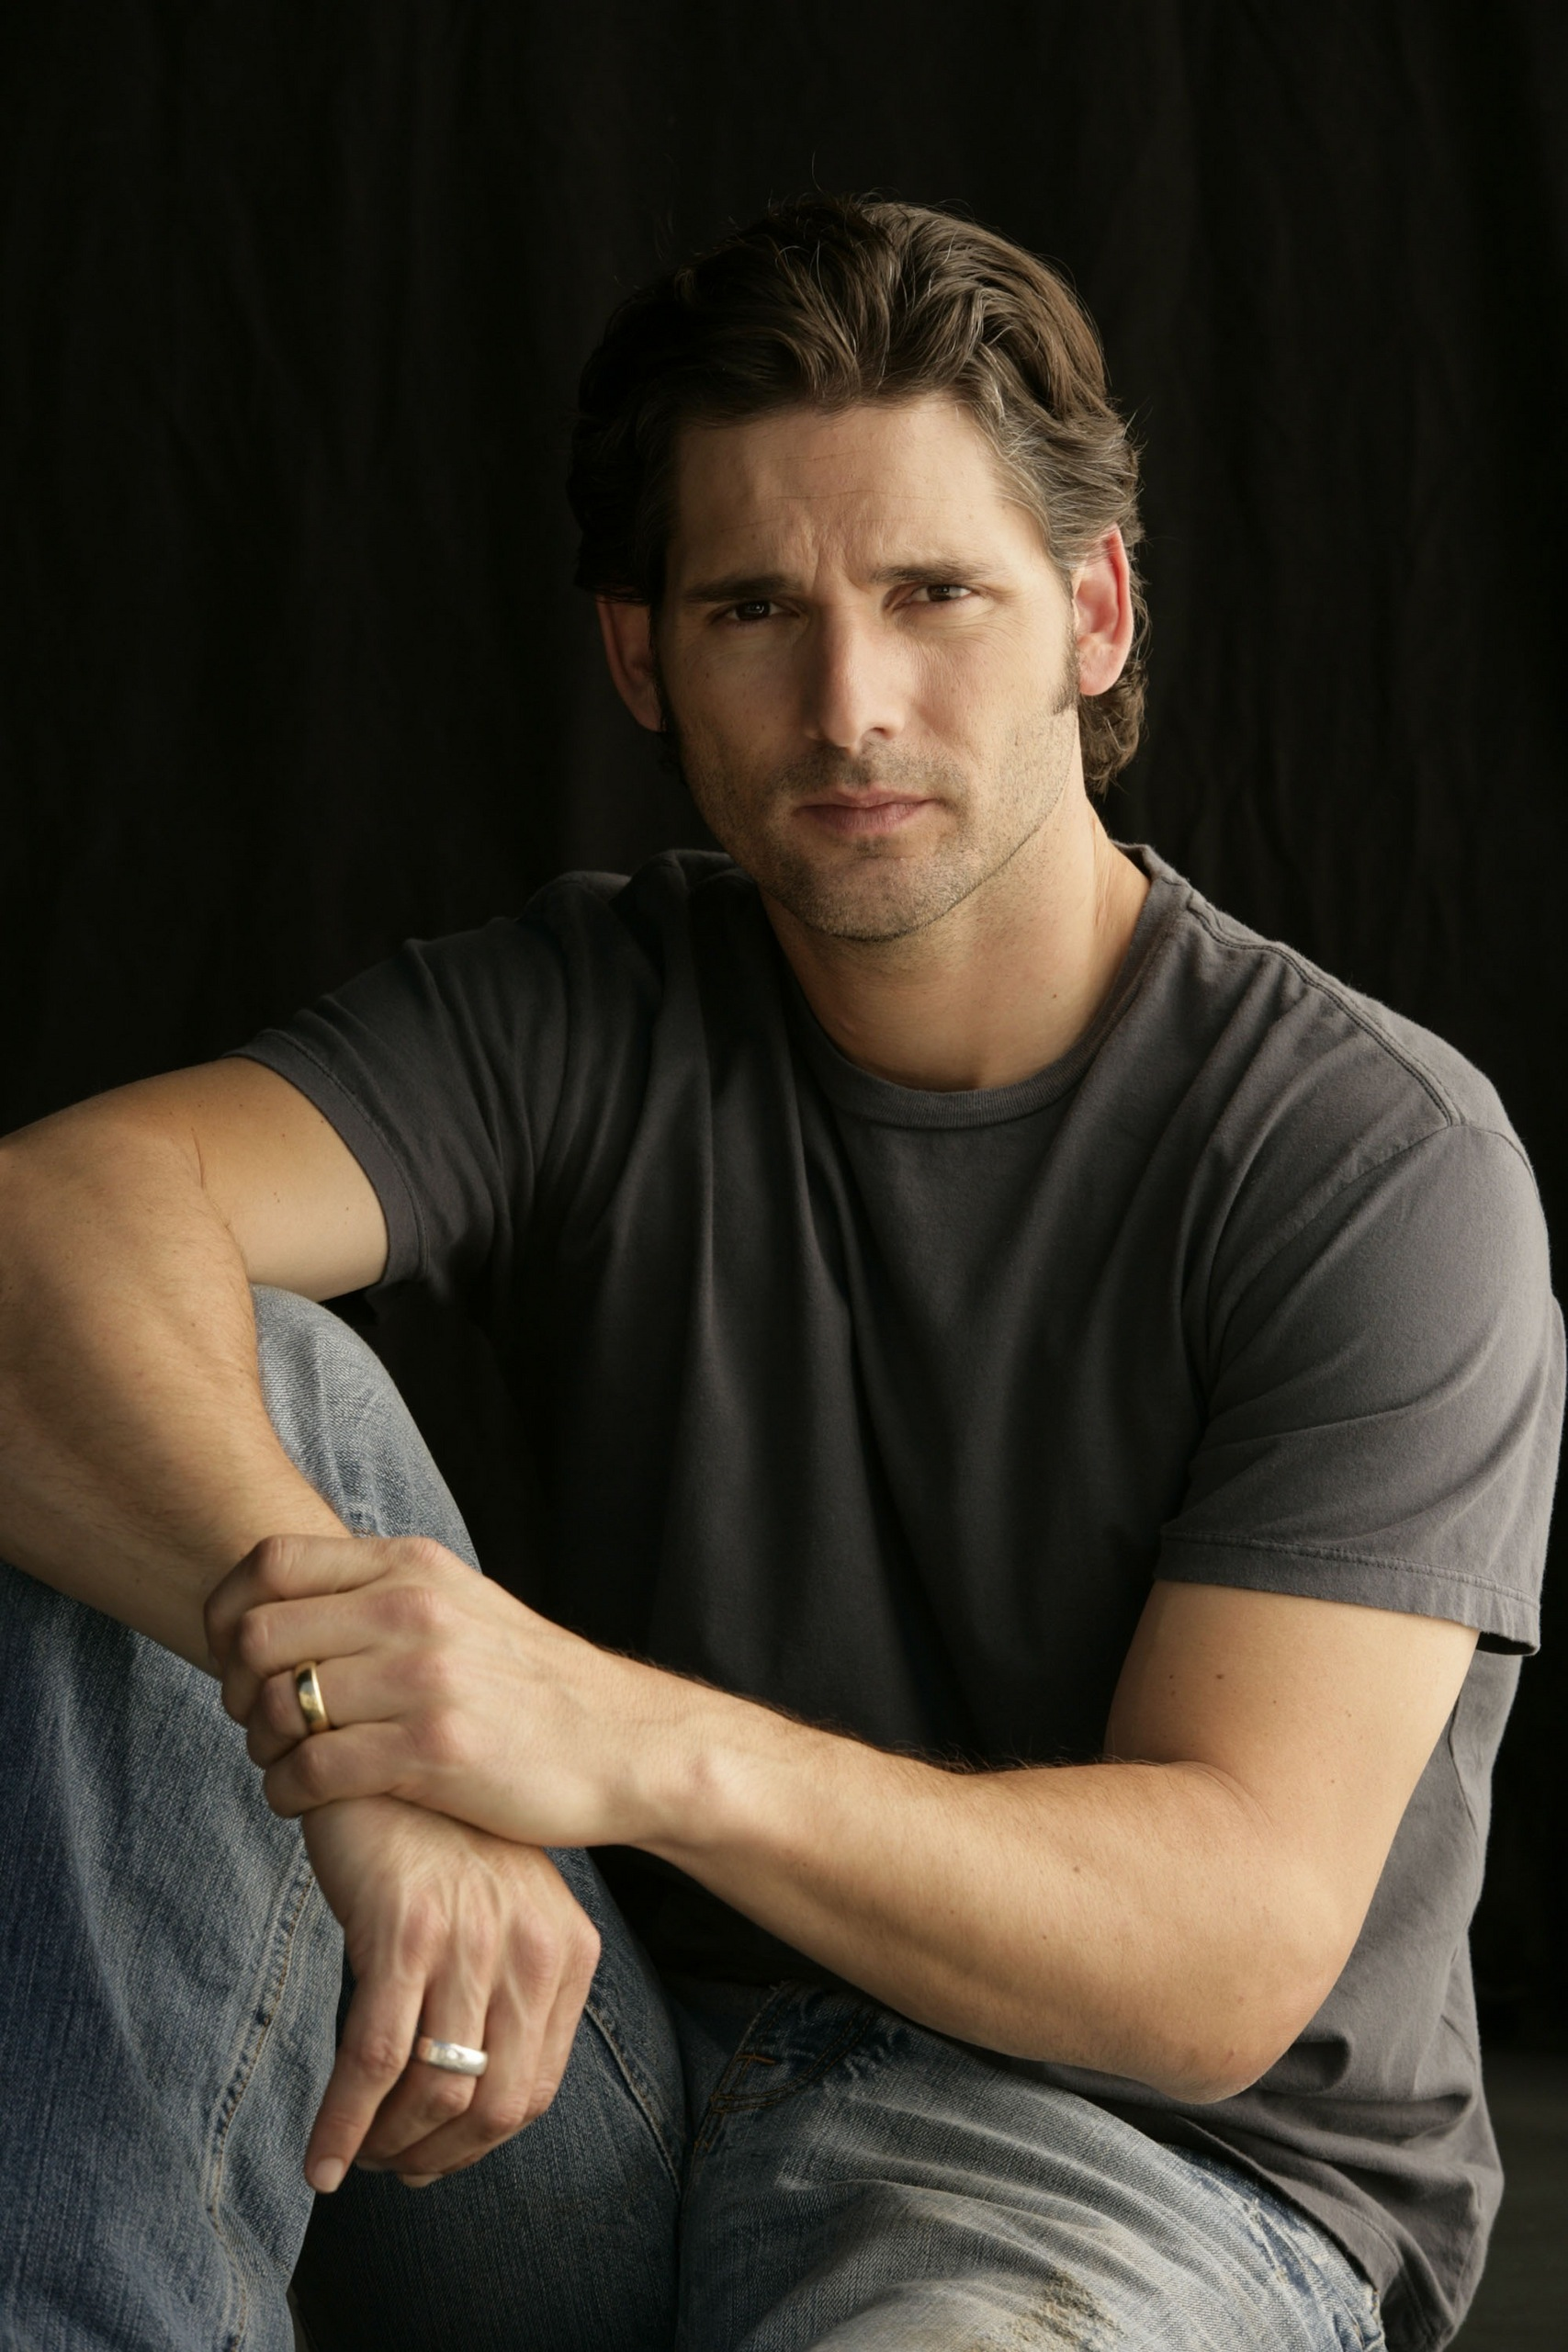 Eric Bana Backgrounds, Compatible - PC, Mobile, Gadgets| 1707x2560 px